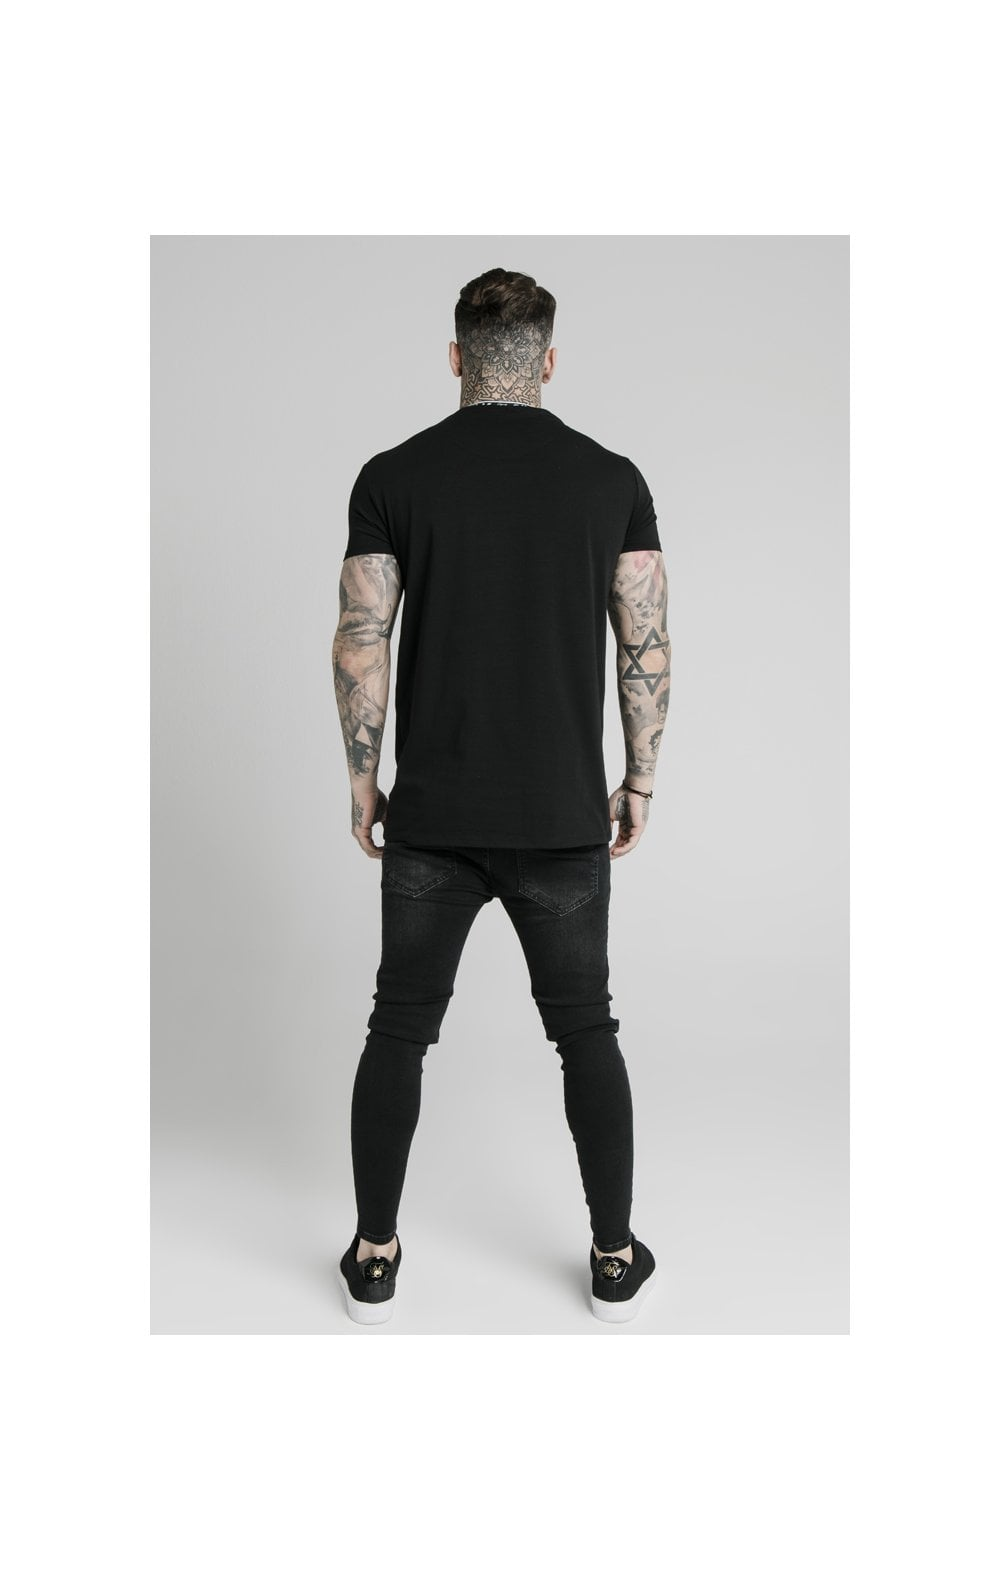 SikSilk S/S Tape Collar Prestige Tee - Black (5)